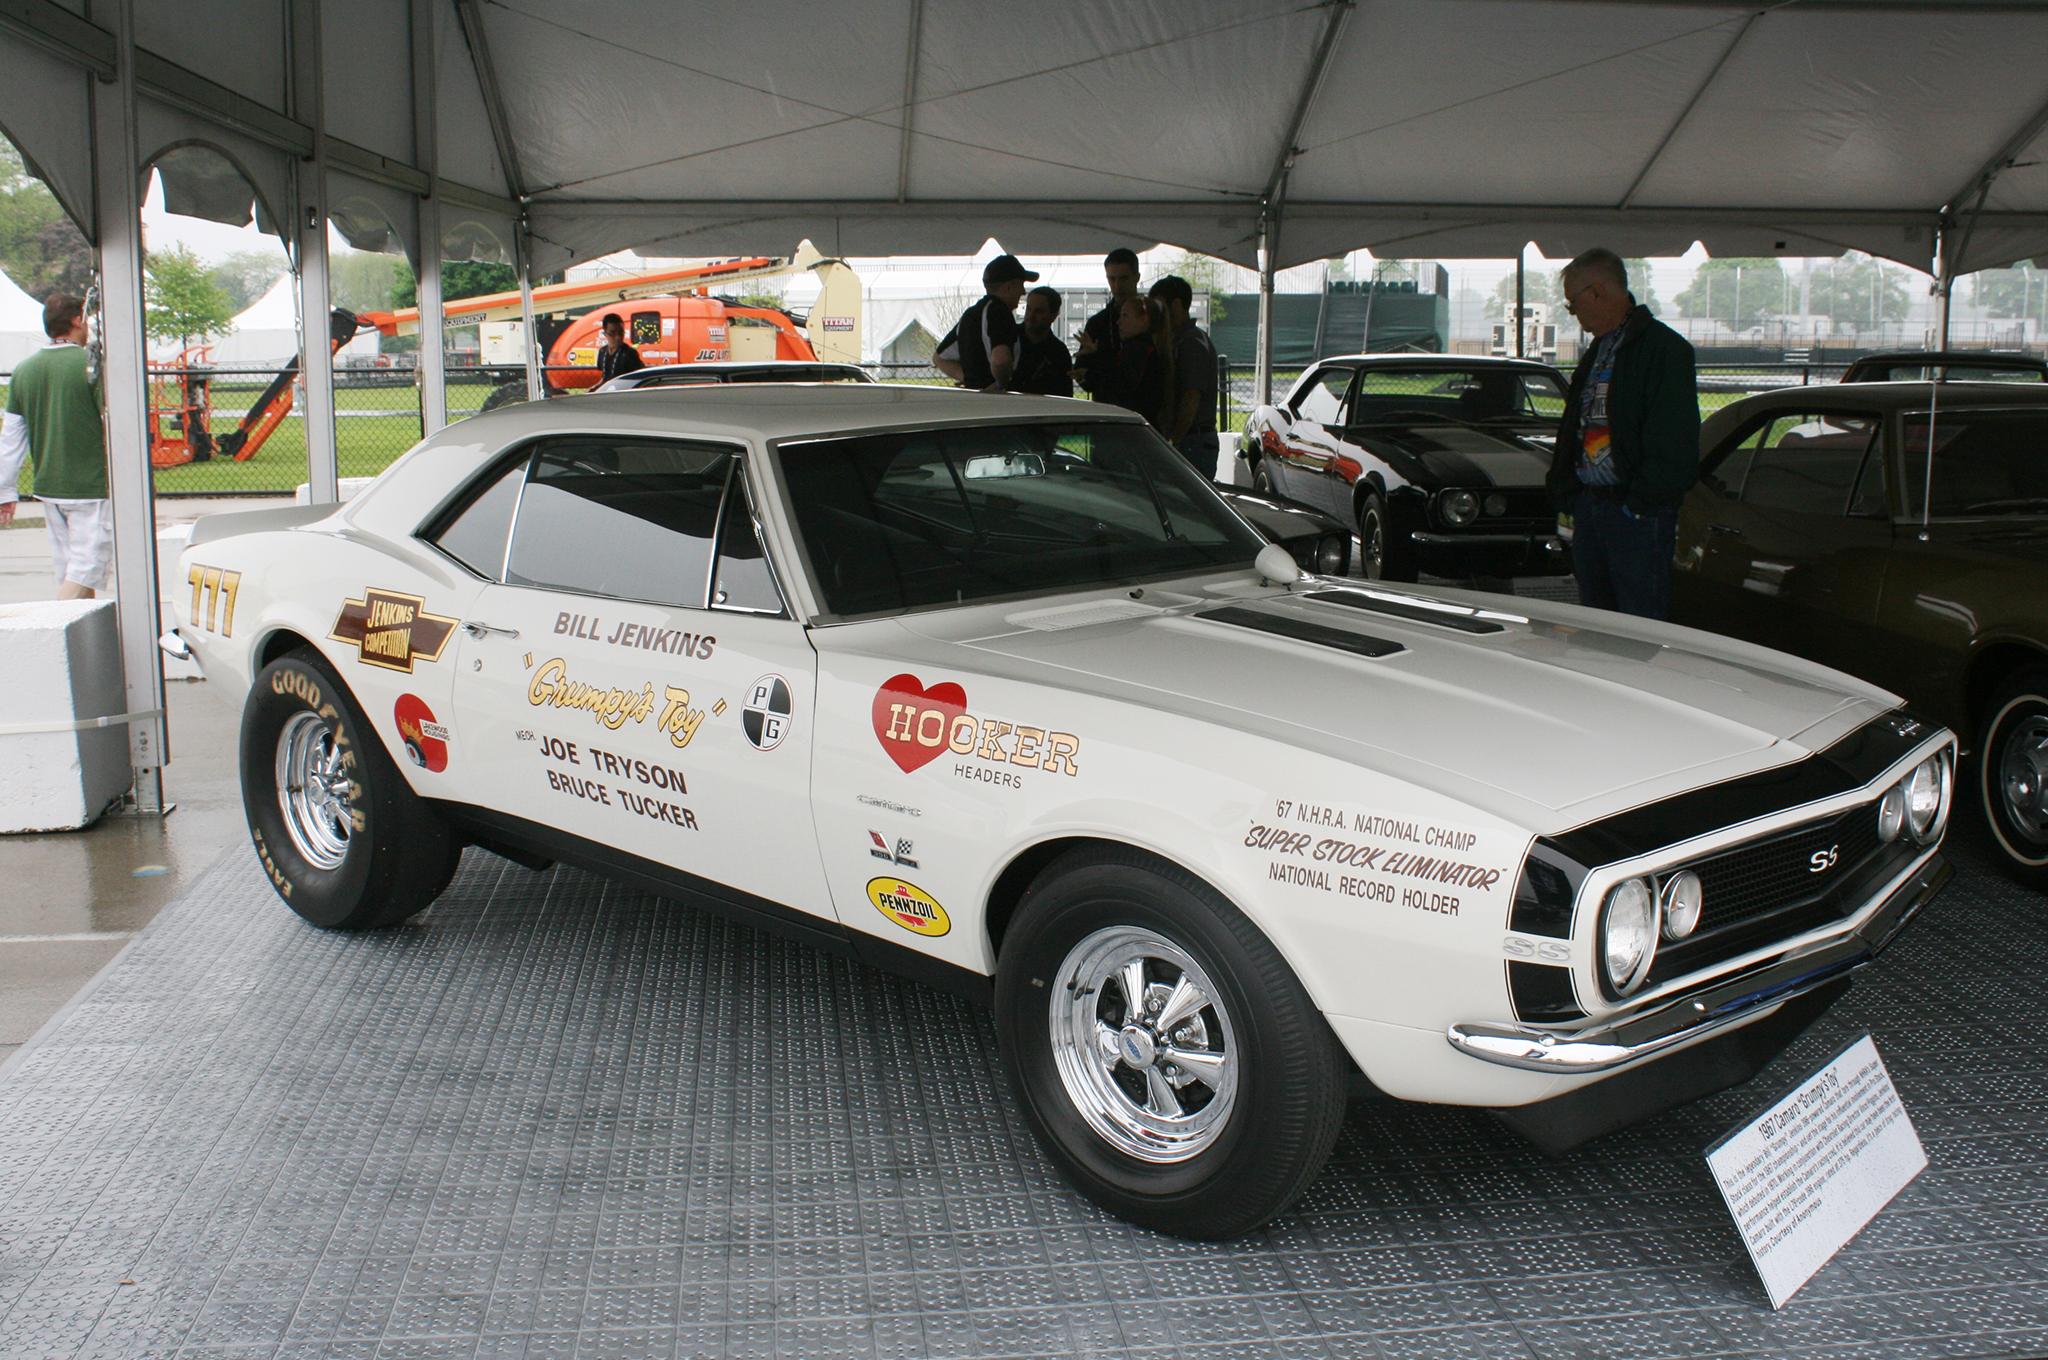 """Working in conjunction with Chevrolet Racing Director Vince Piggins, Bill """"Grumpy"""" Jenkins helped establish the Camaro's racing cred on the dragstrip. It is believed this car may have been the first Camaro built with the L78-code 396 engine, rated at 375 hp. Regardless, it's a piece of drag racing history."""